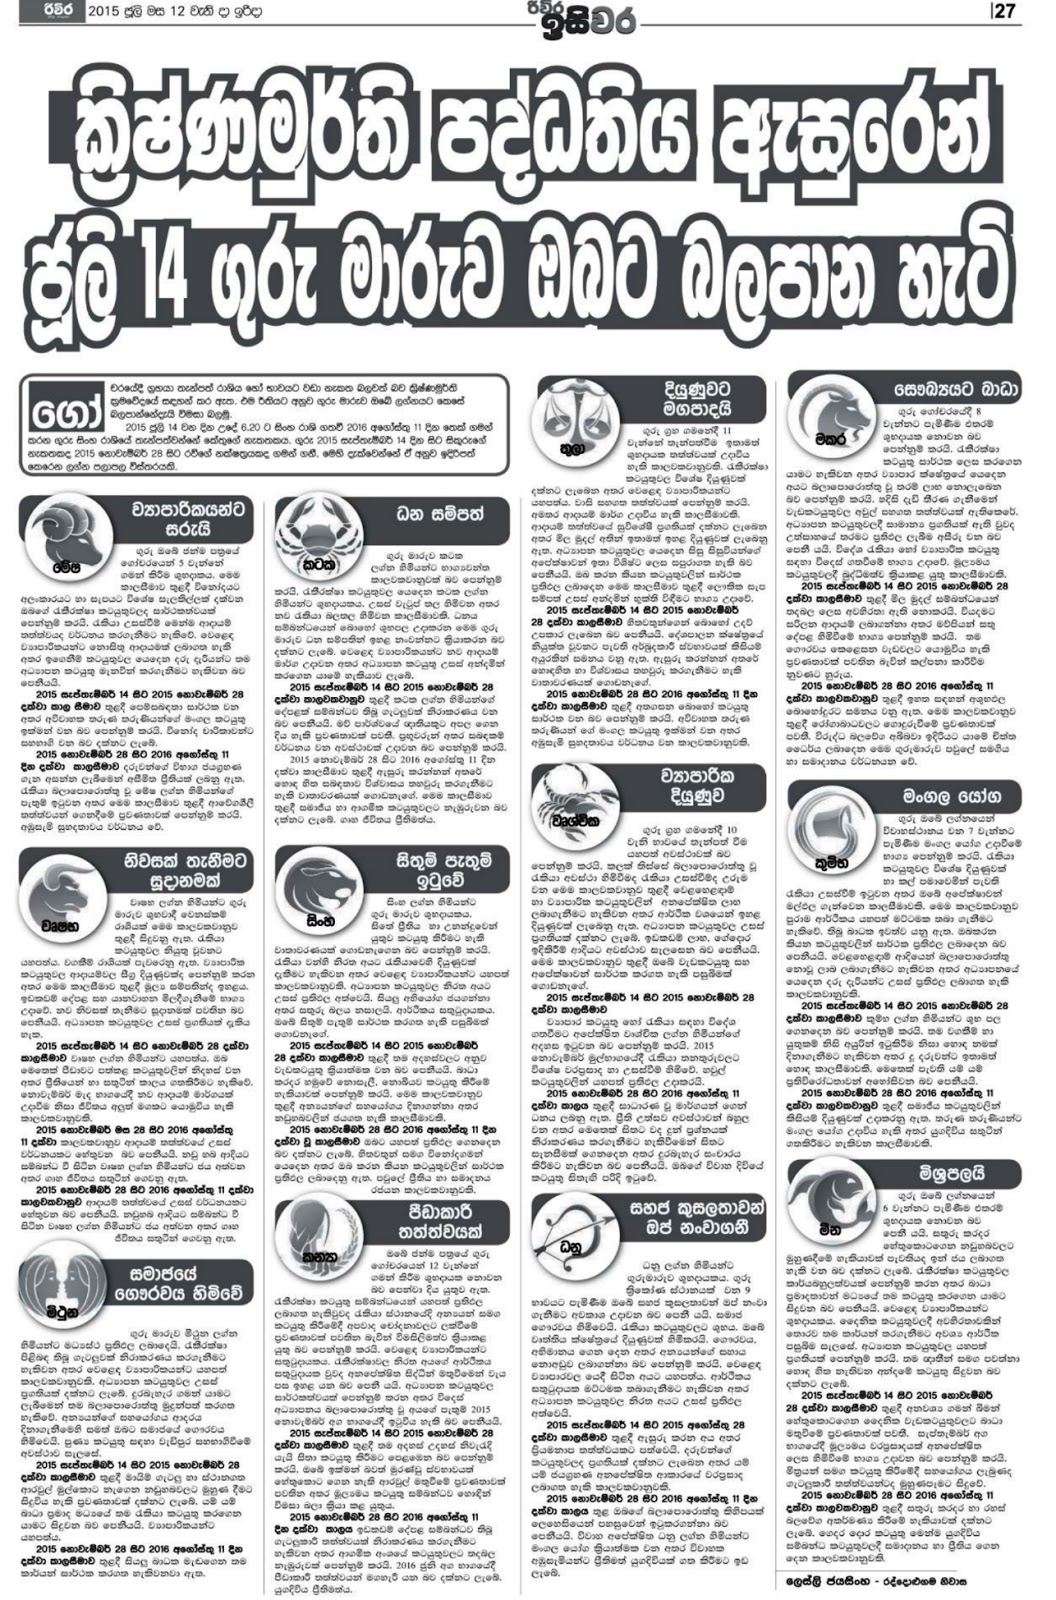 ක්‍à¶à·'ෂ්චමුà¶à·Šà¶­à·' පලාපල Predictions For Guru Langa Predictions For Guru Maruwa